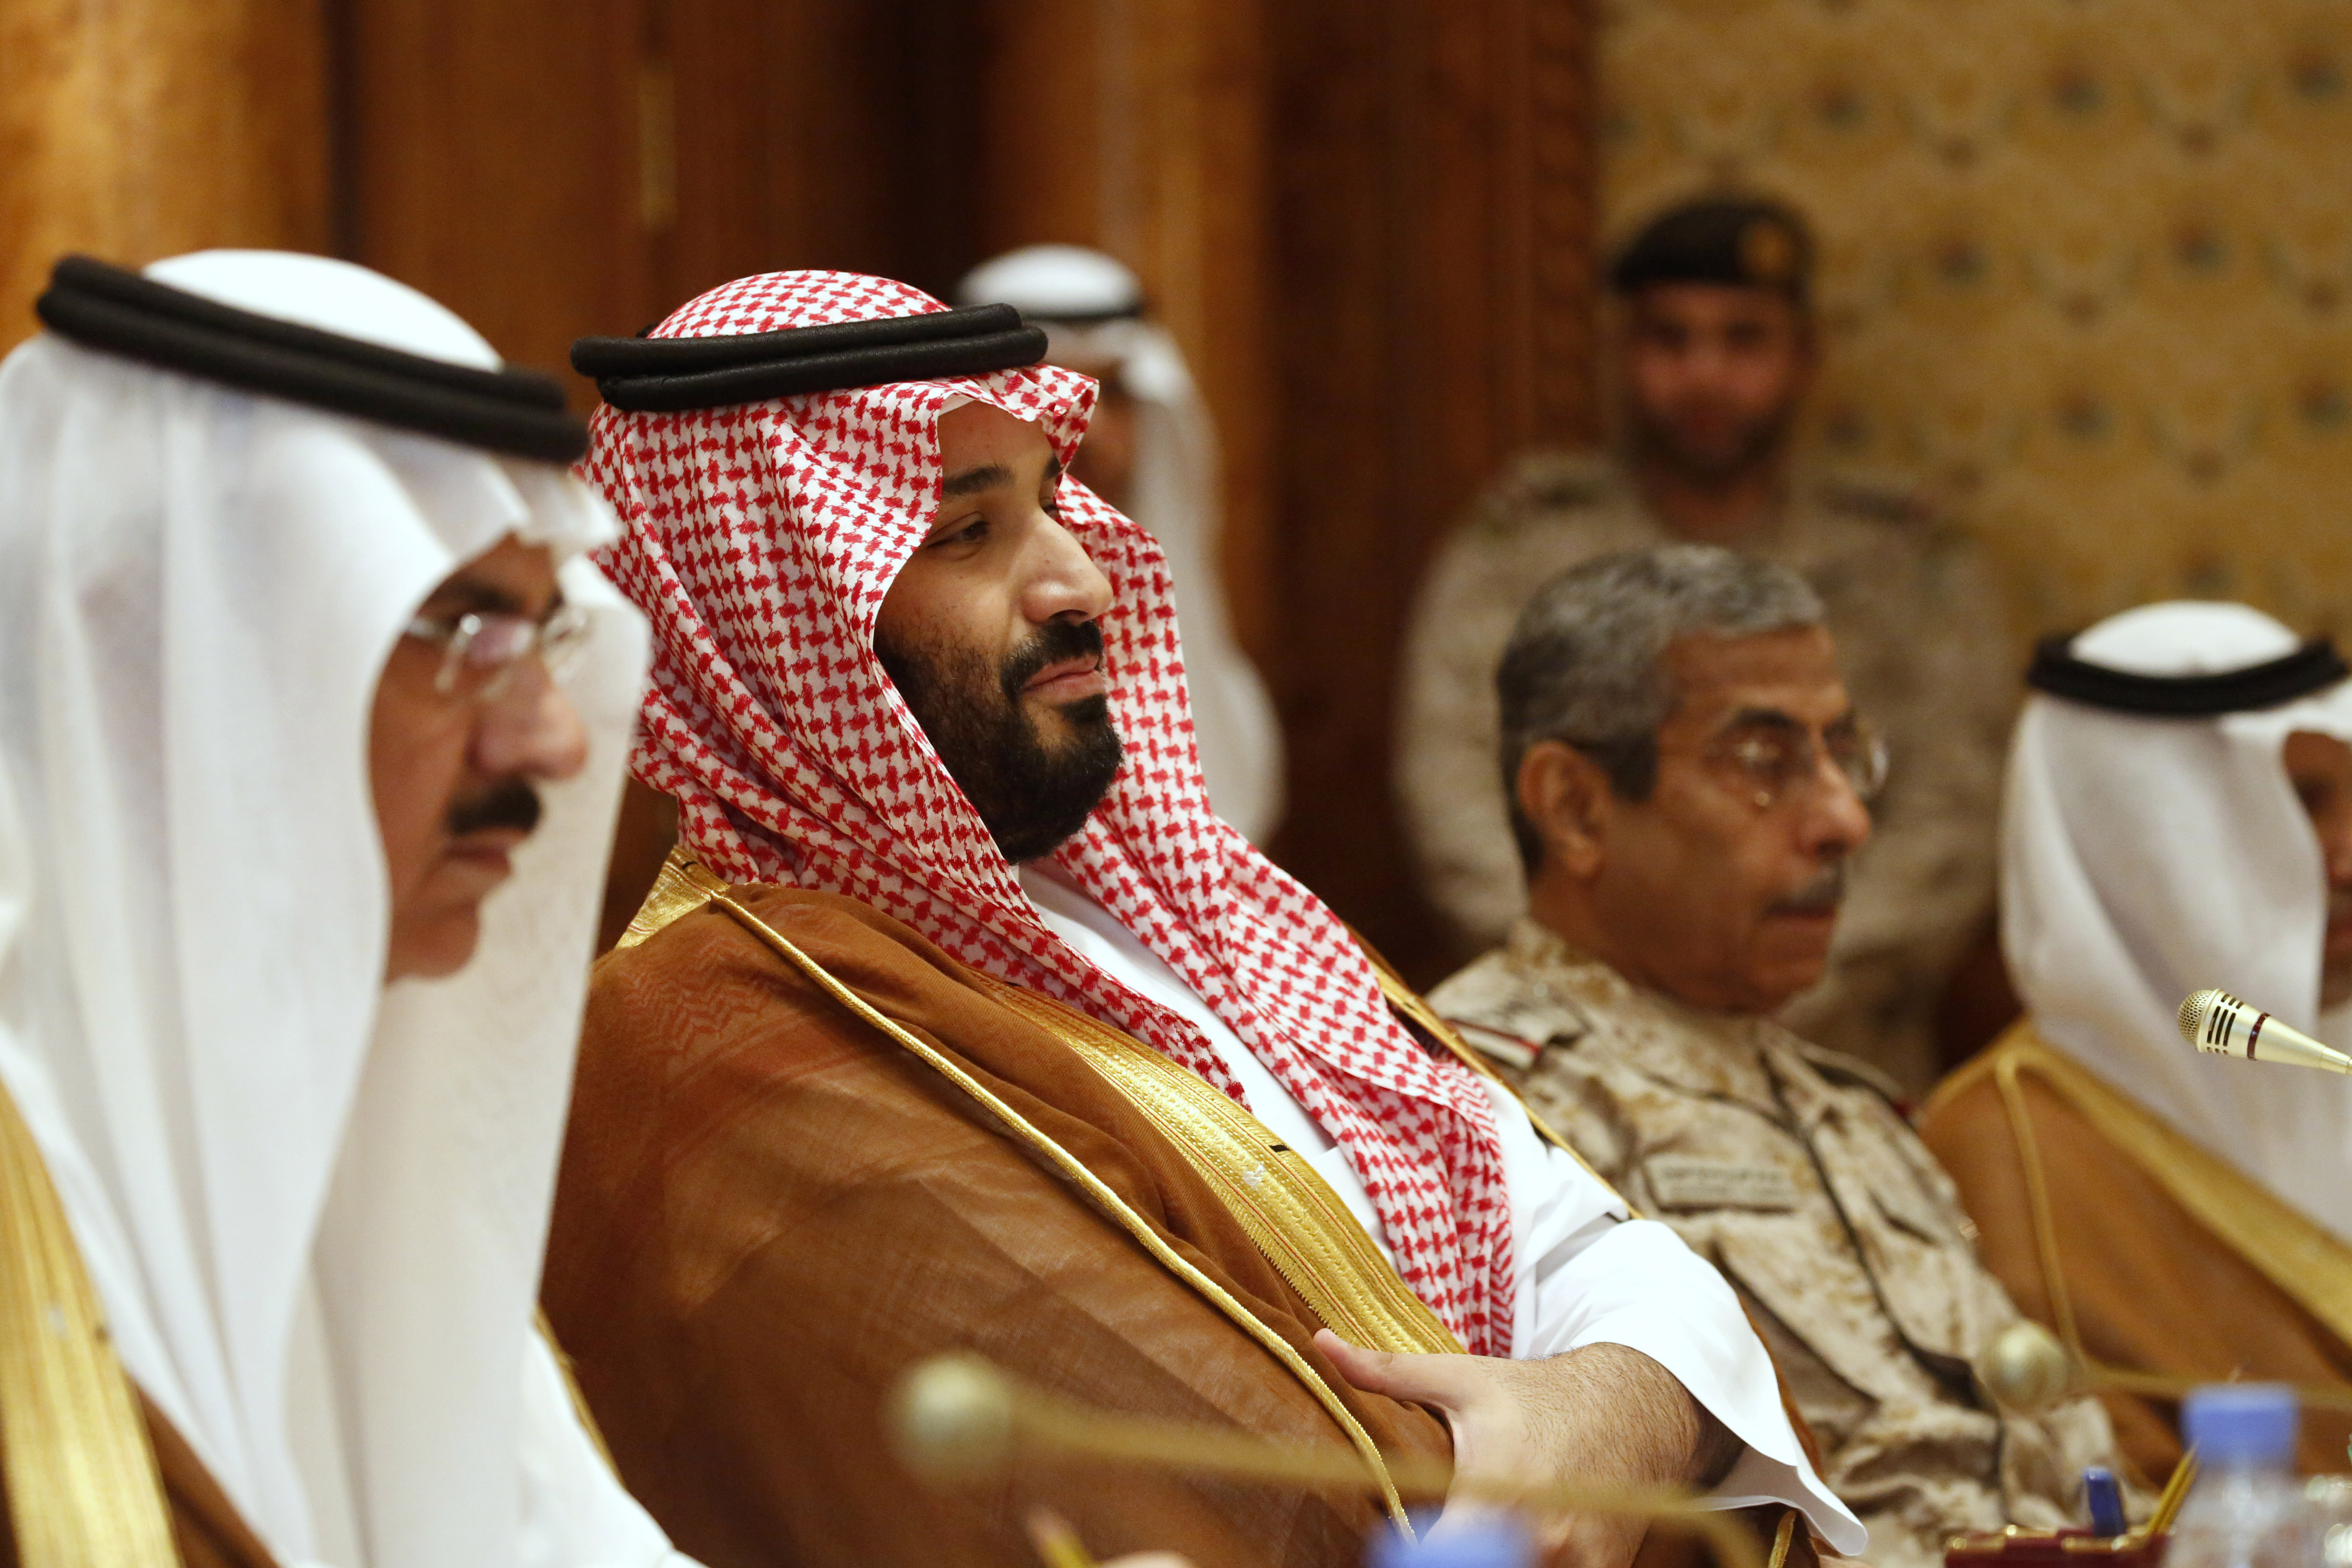 Saudi regime attempts vast reconsolidation with high-up purges and war cries